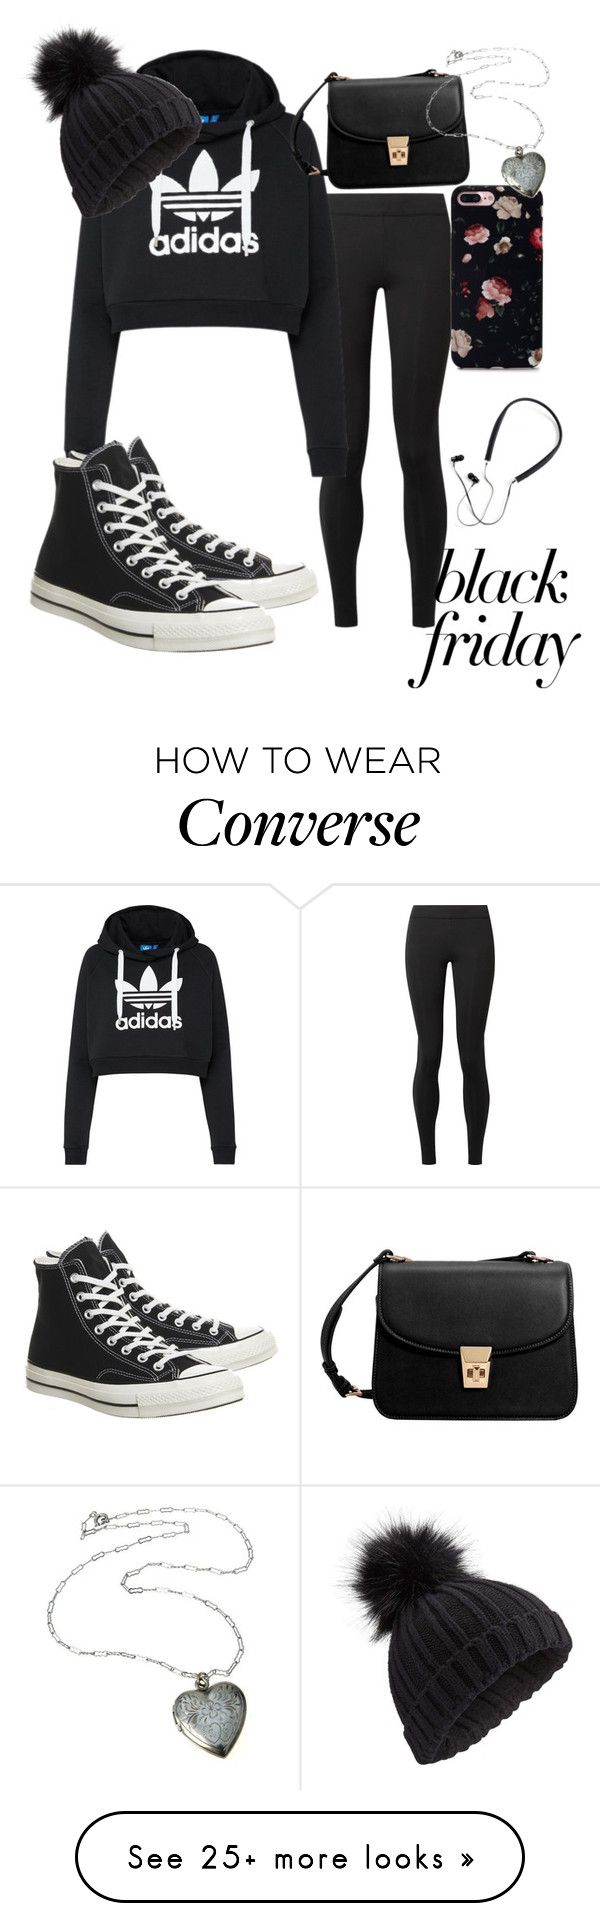 """"" by ejhshshsh on Polyvore featuring The Row, adidas Originals, Converse, MANGO, Miss Selfridge and Polaroid"